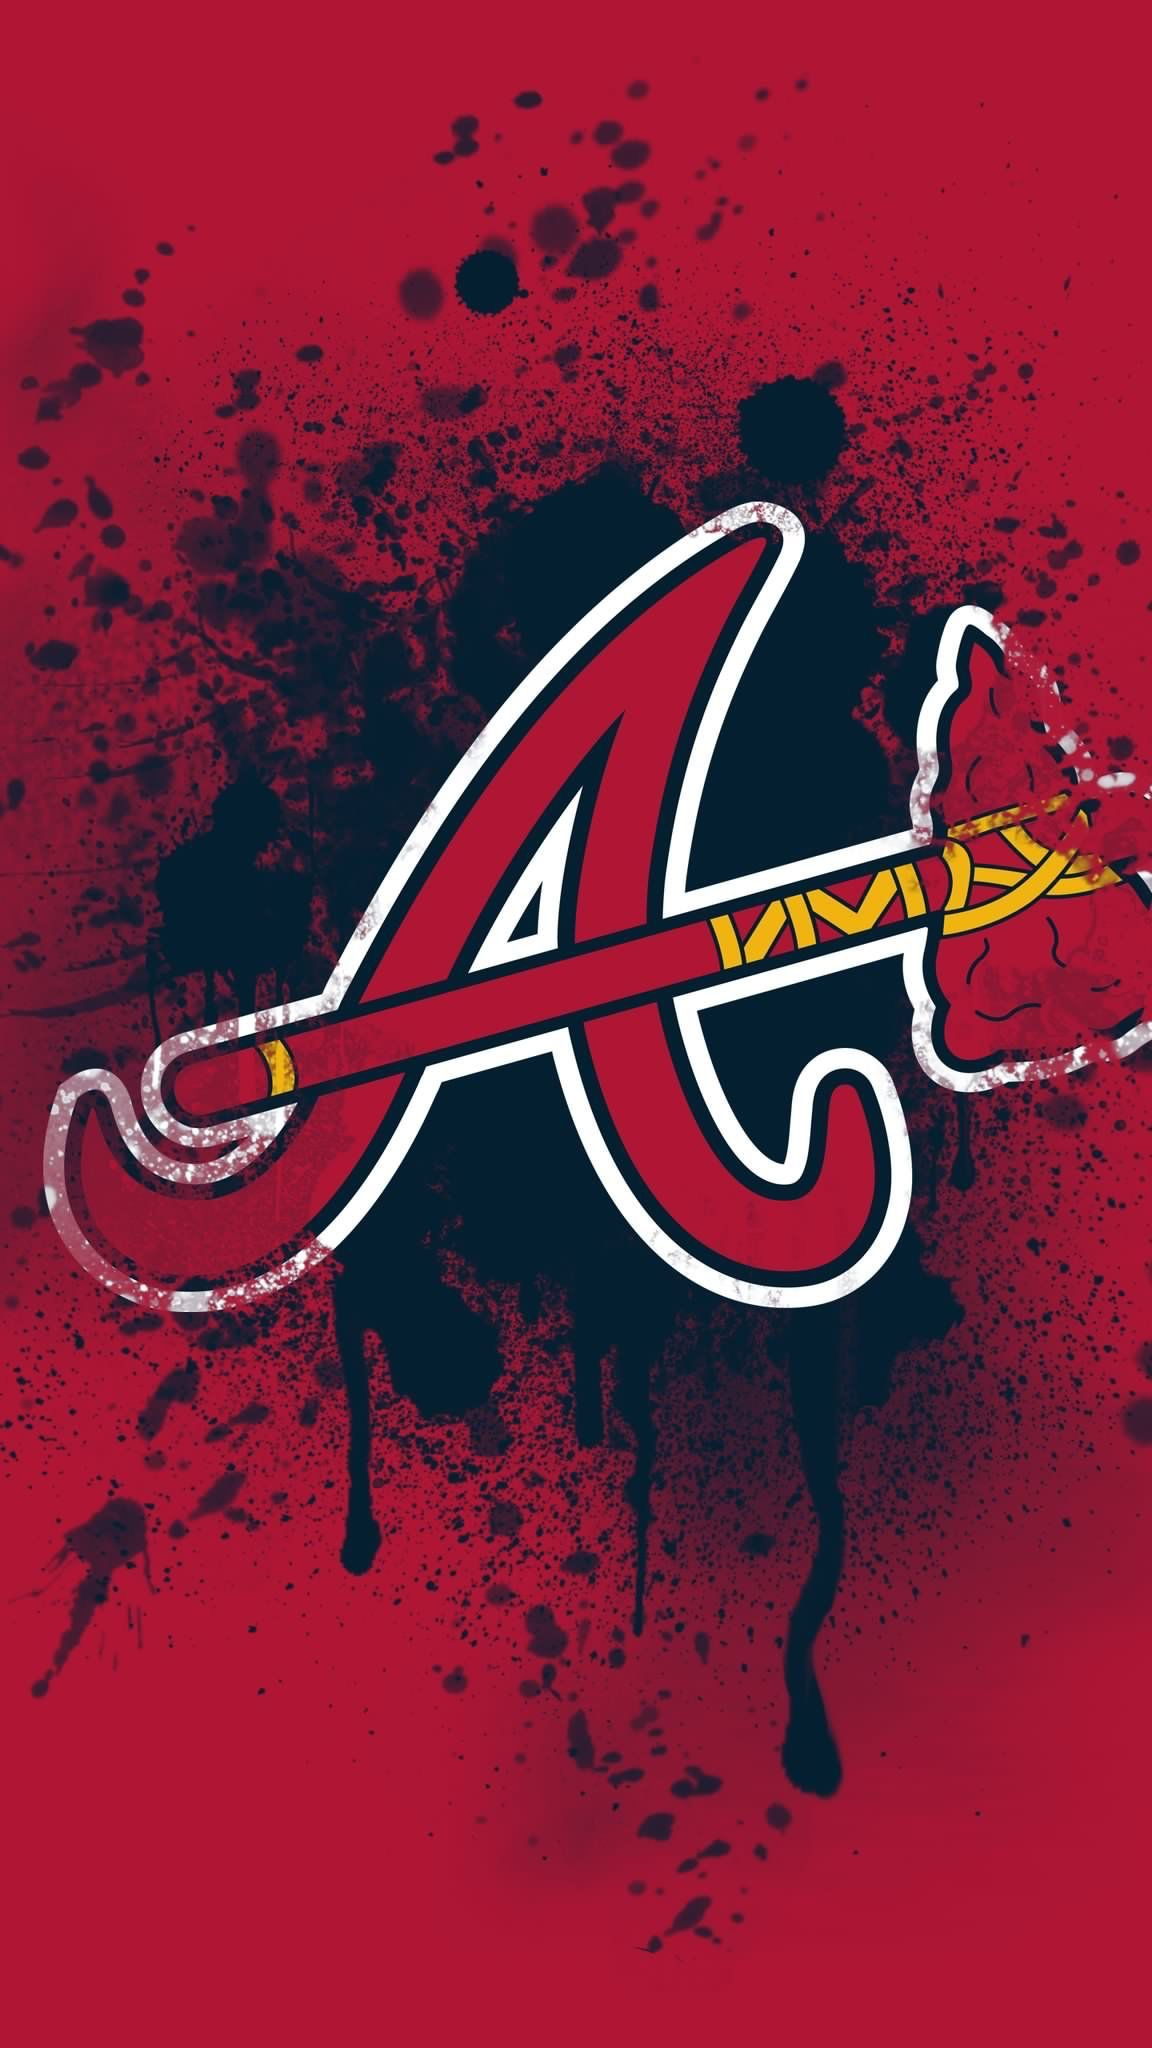 Pin by Summer Gladson on Wallpapers Atlanta braves